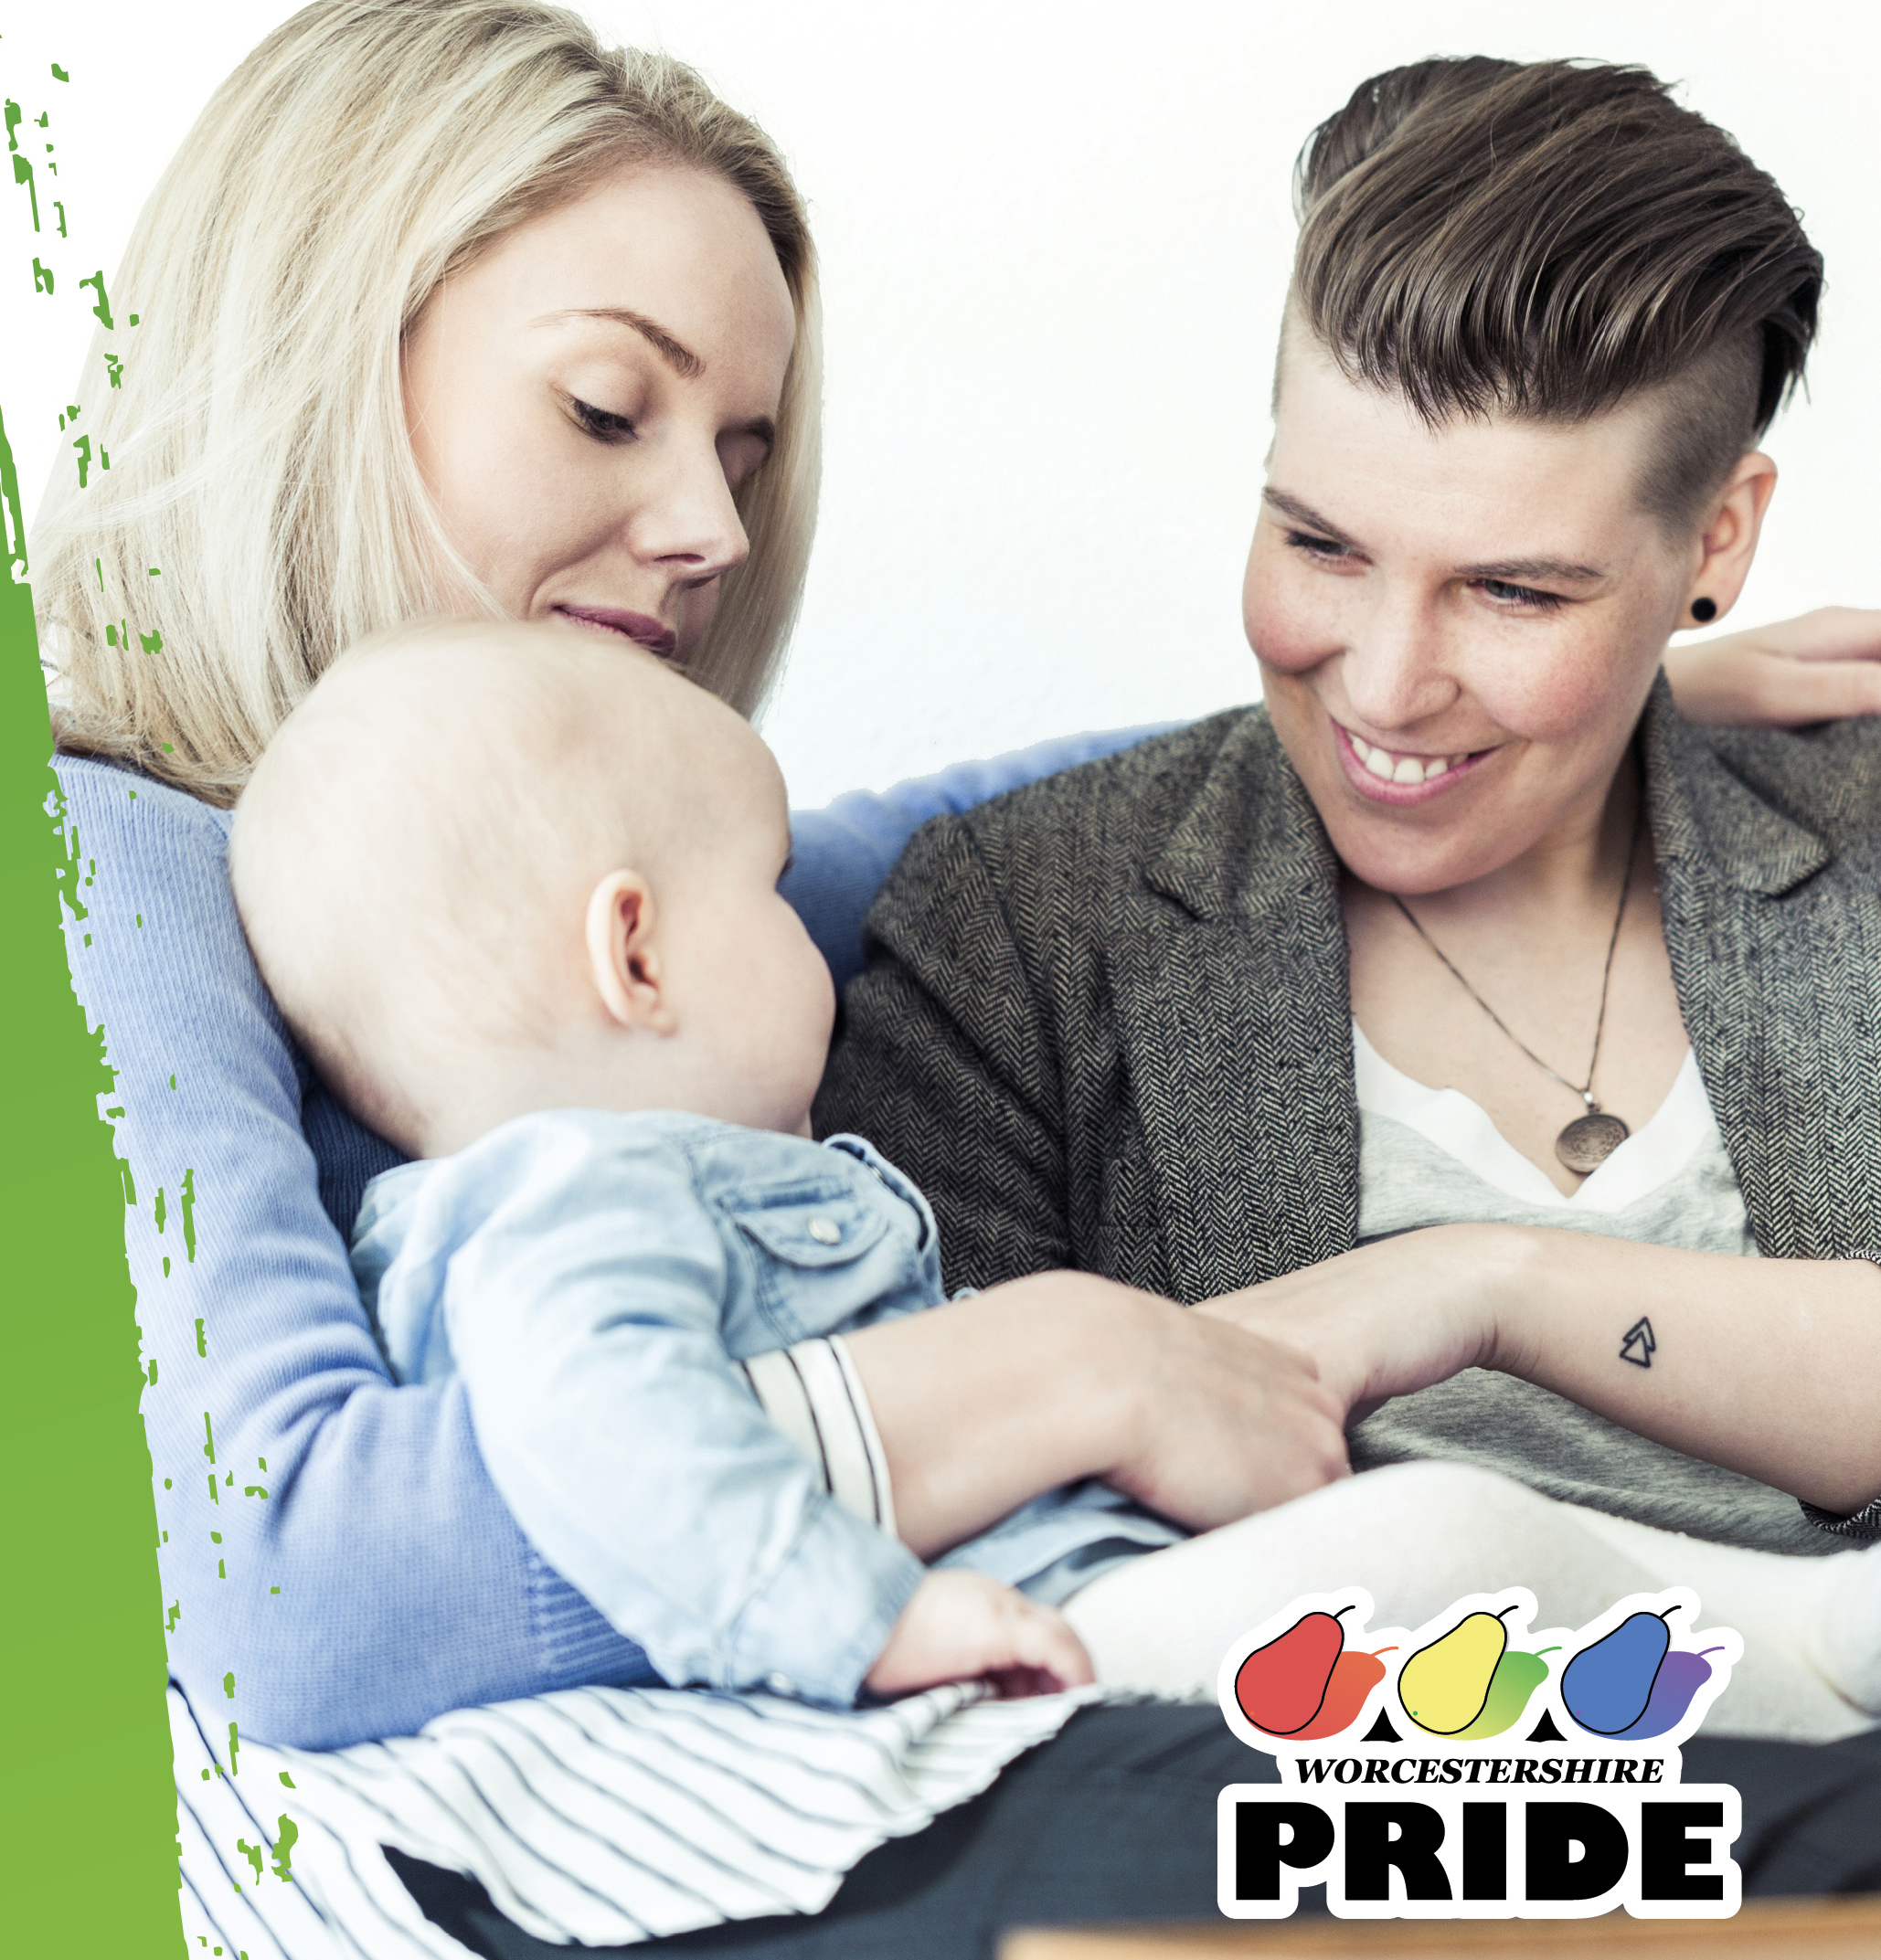 Fostering Worcestershire Pride pop up event